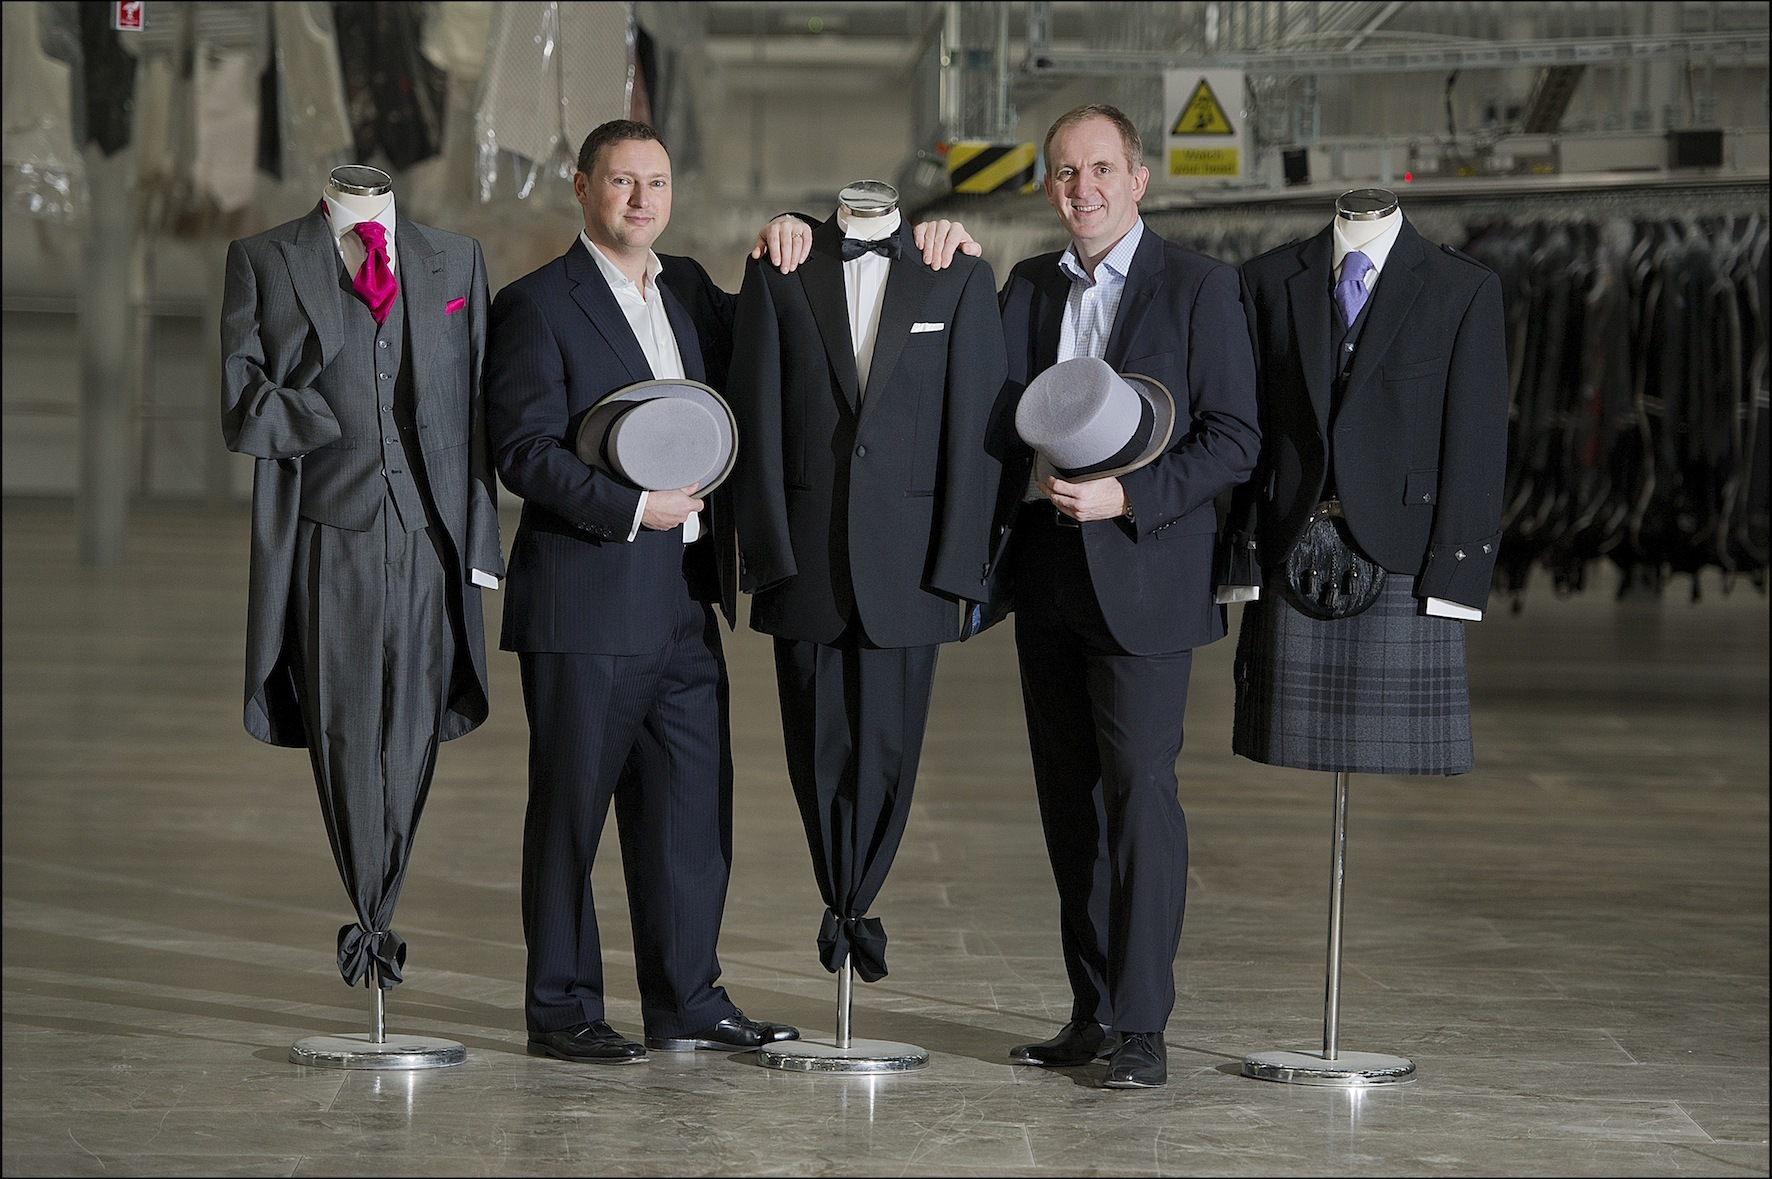 Acs Clothing Dressed For Expansion Following Business Growth Fund Investment